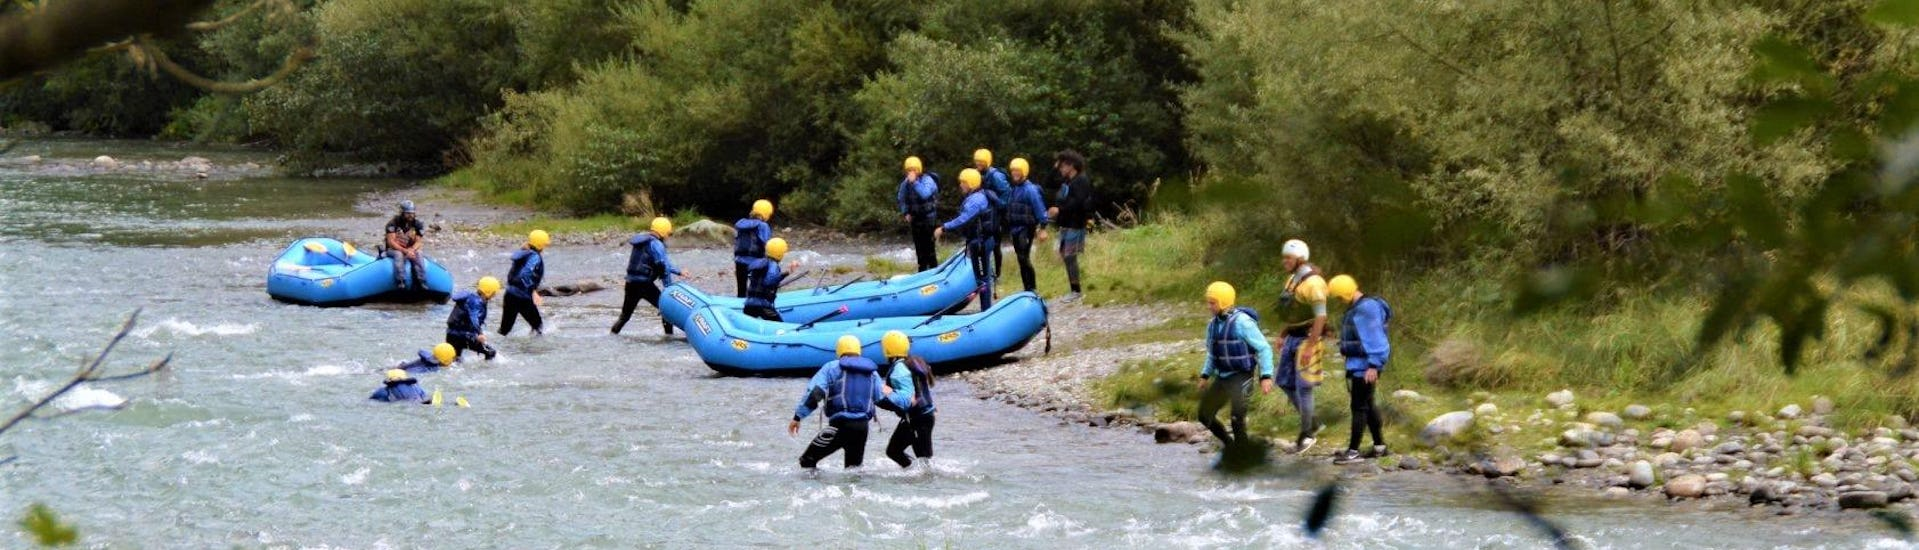 The participants of the Rafting Super integral on the river Noce organized by X Raft Val di Sole are going out from the river at the end of the activity.